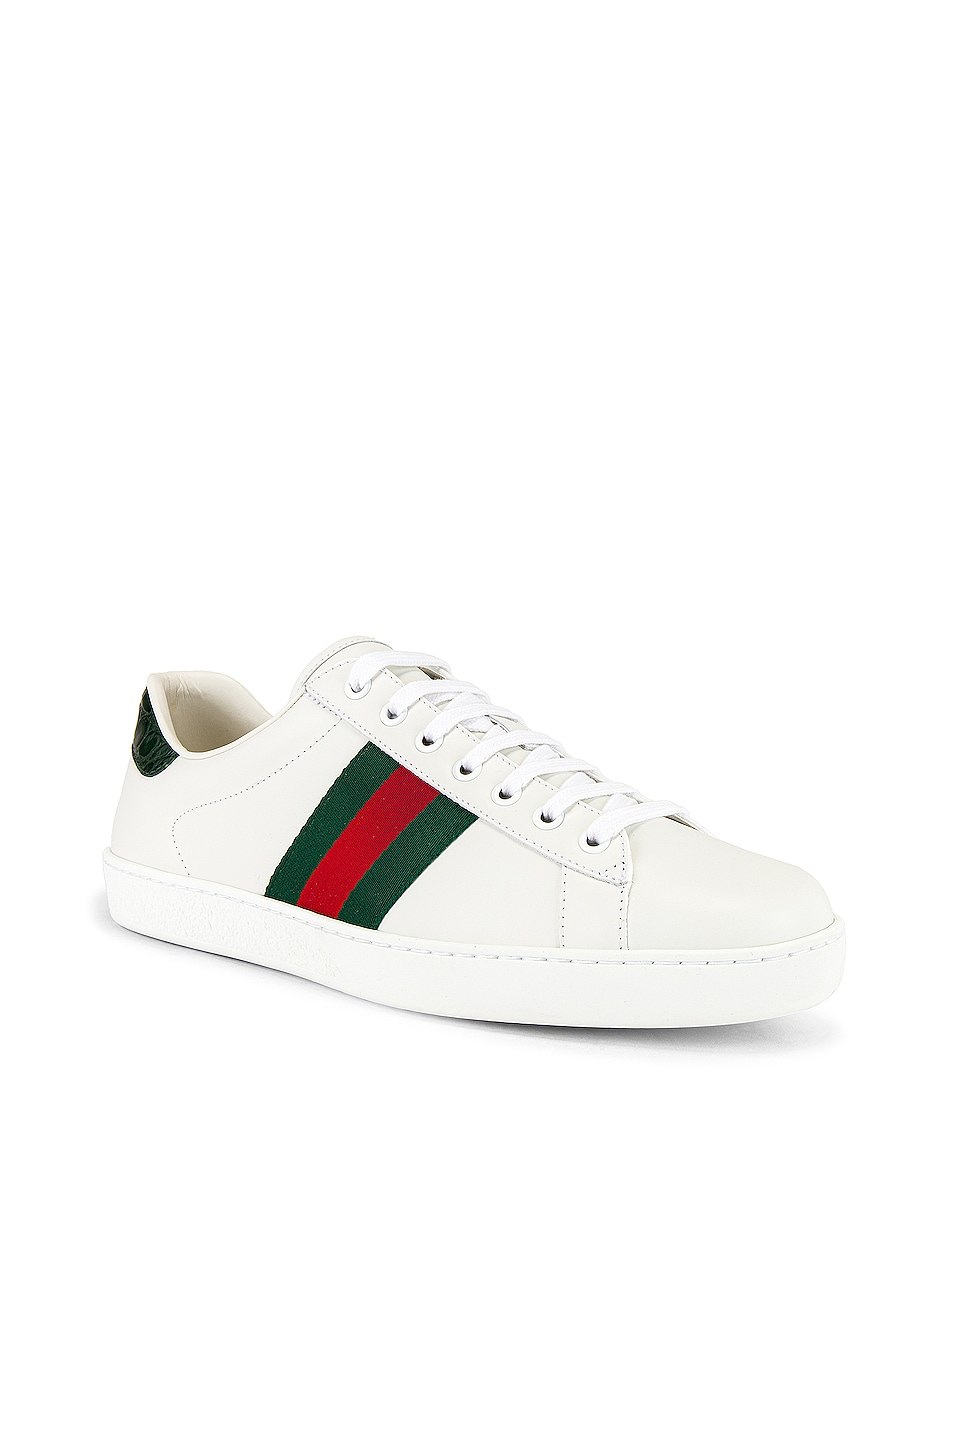 Image 1 of Gucci New Ace Sneaker in White & Red & Green